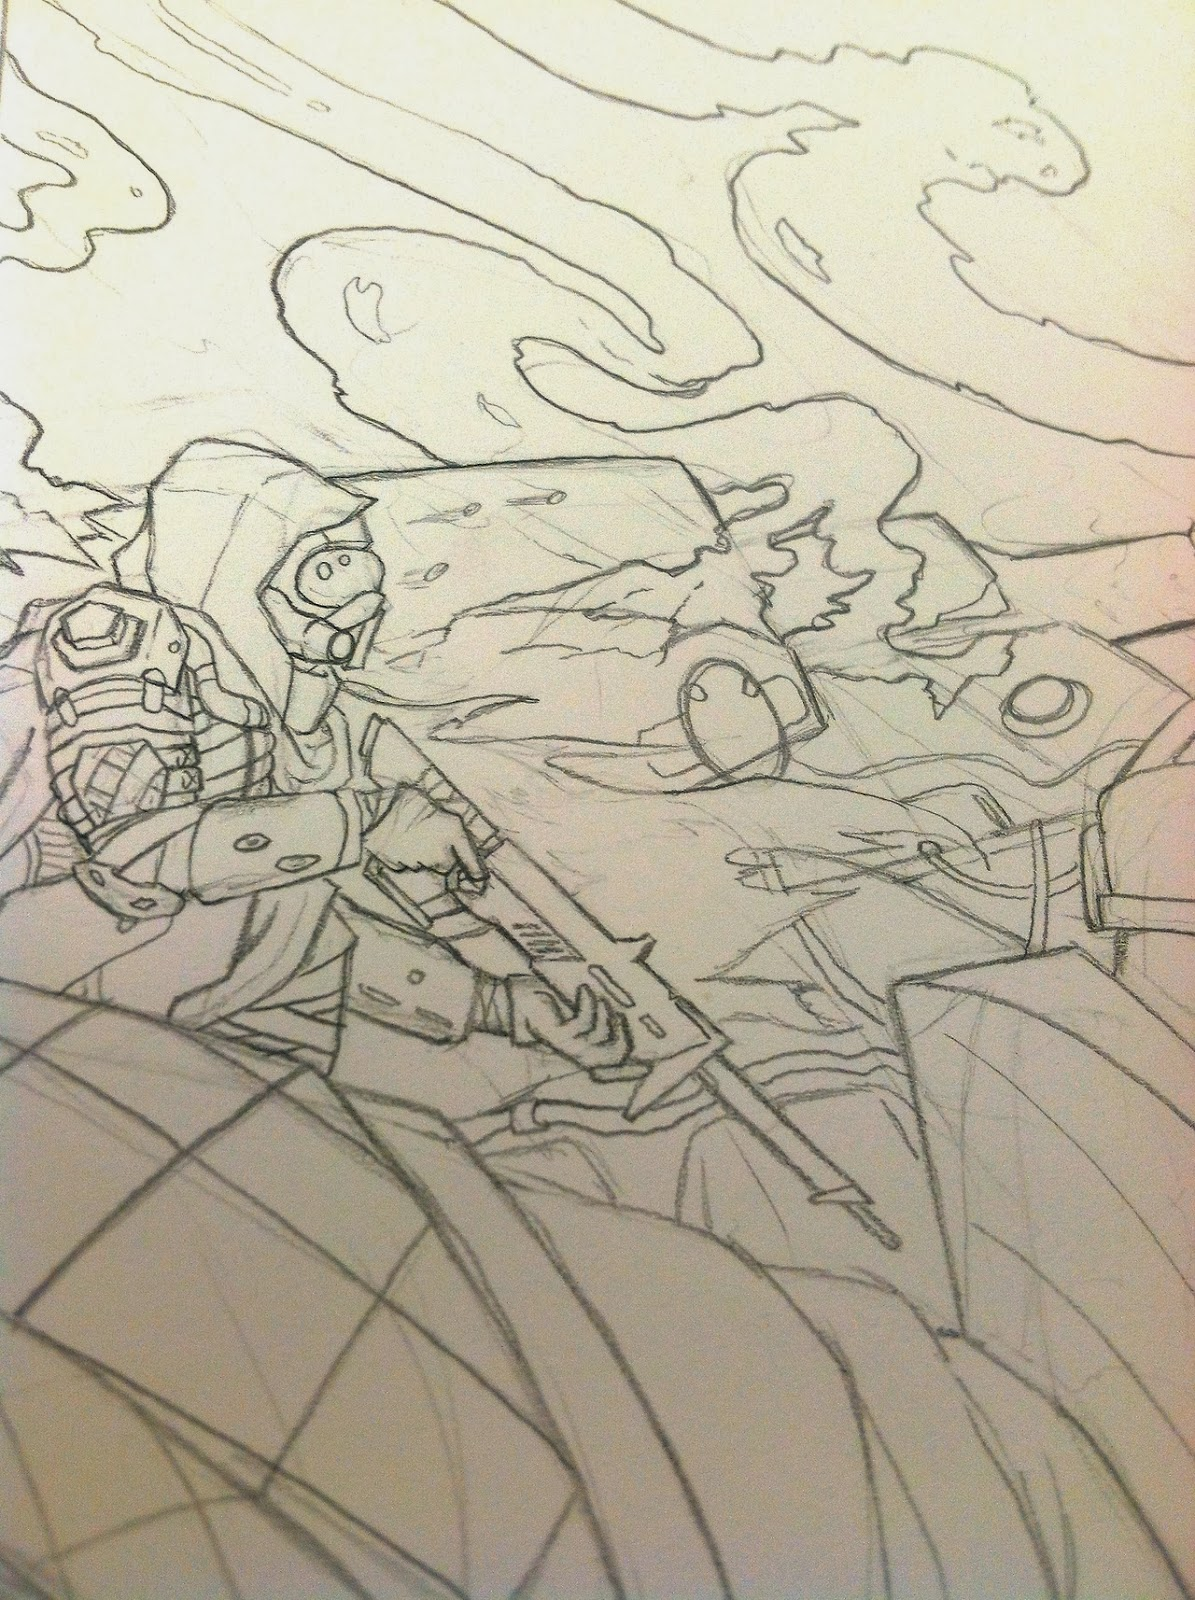 destiny fan art design sketch